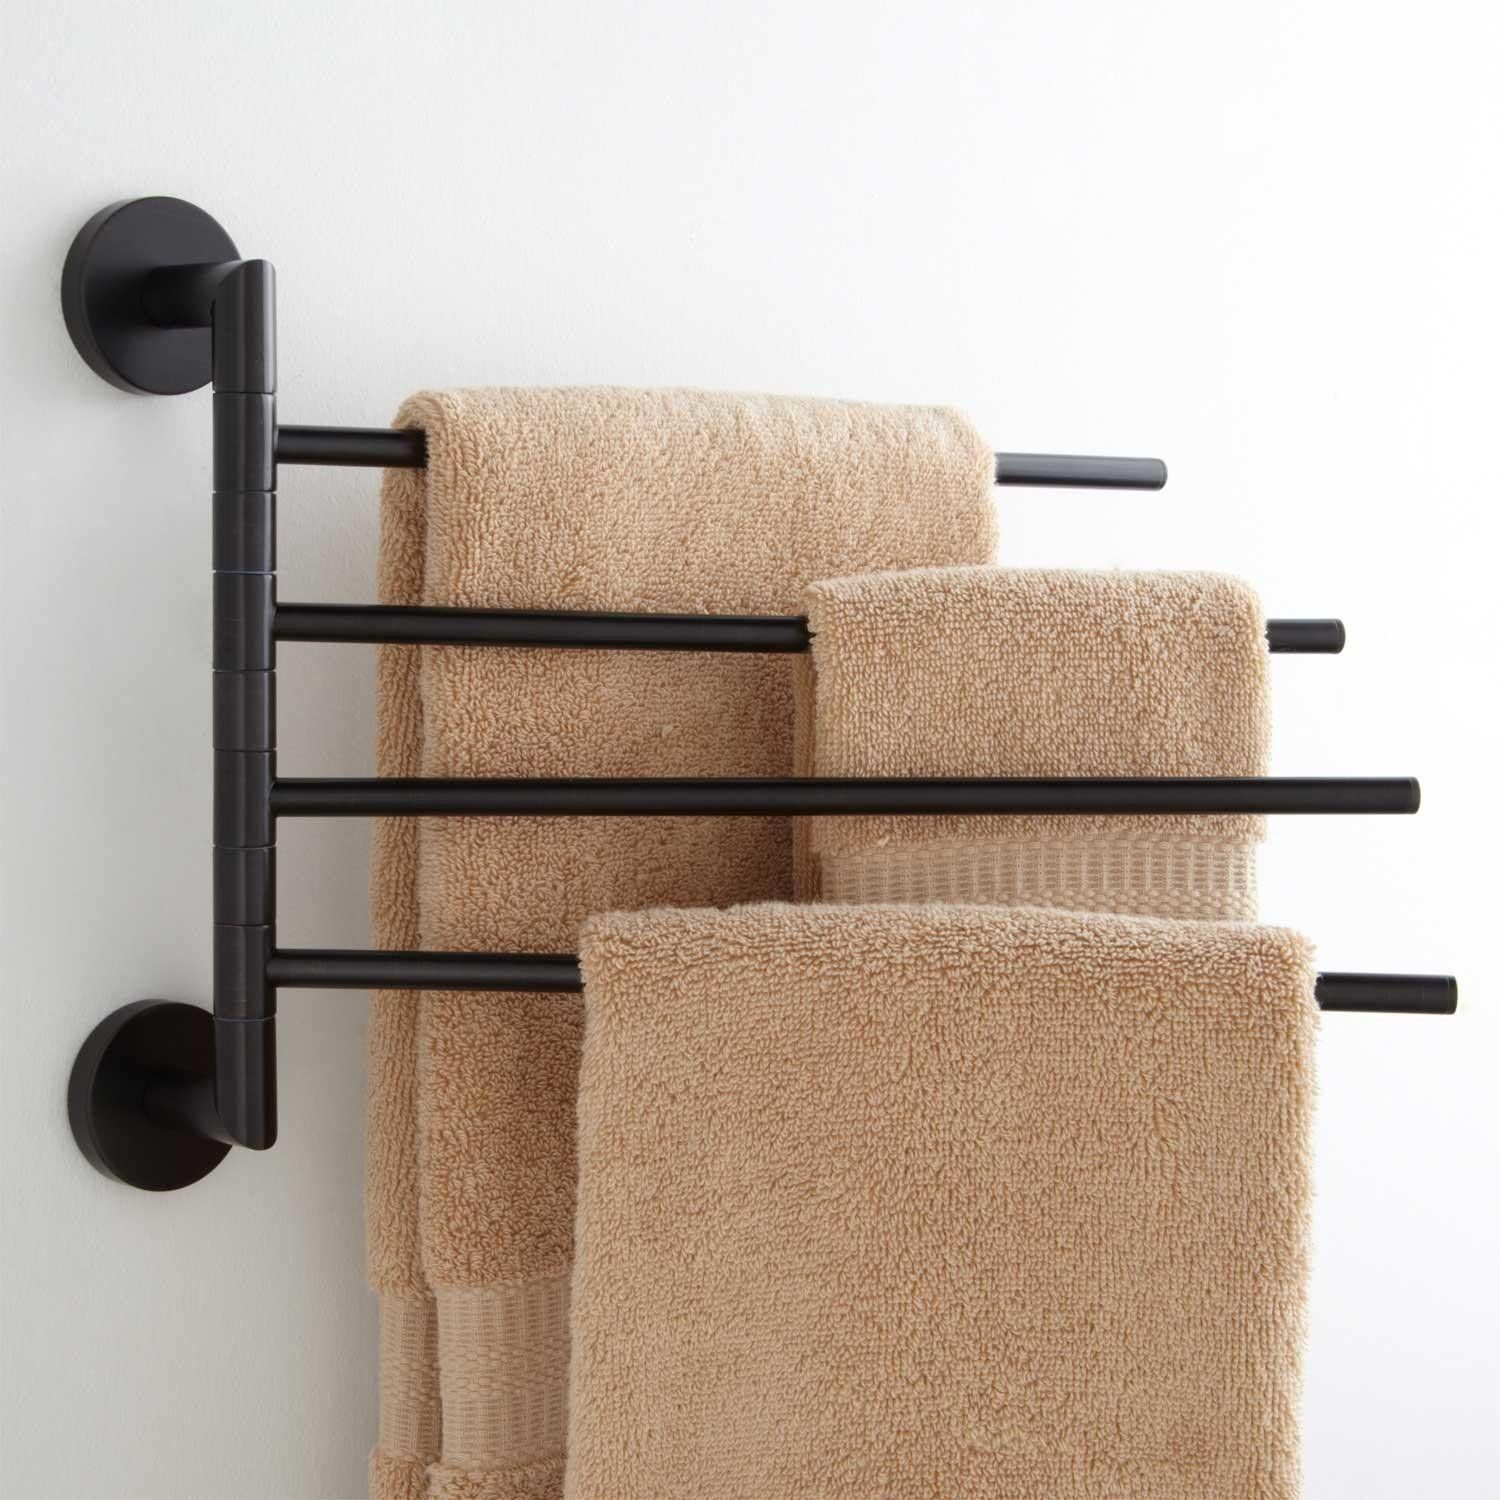 Colvin Quadruple Swing Arm Towel Bar Swings Towels and Bar